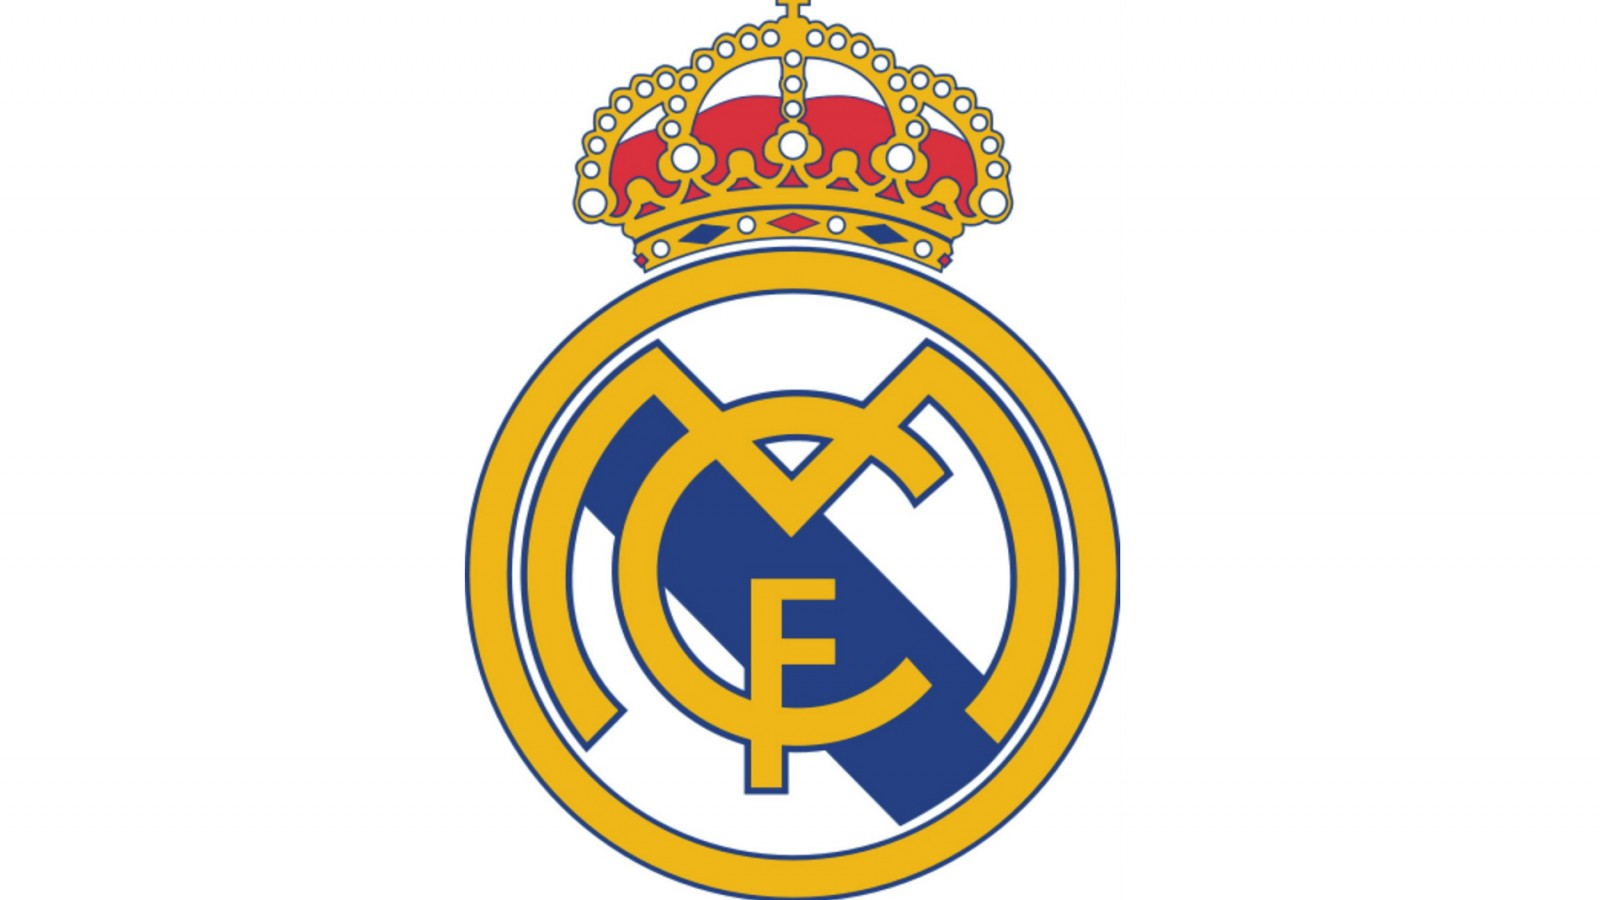 Escudo Del Real Madrid C F